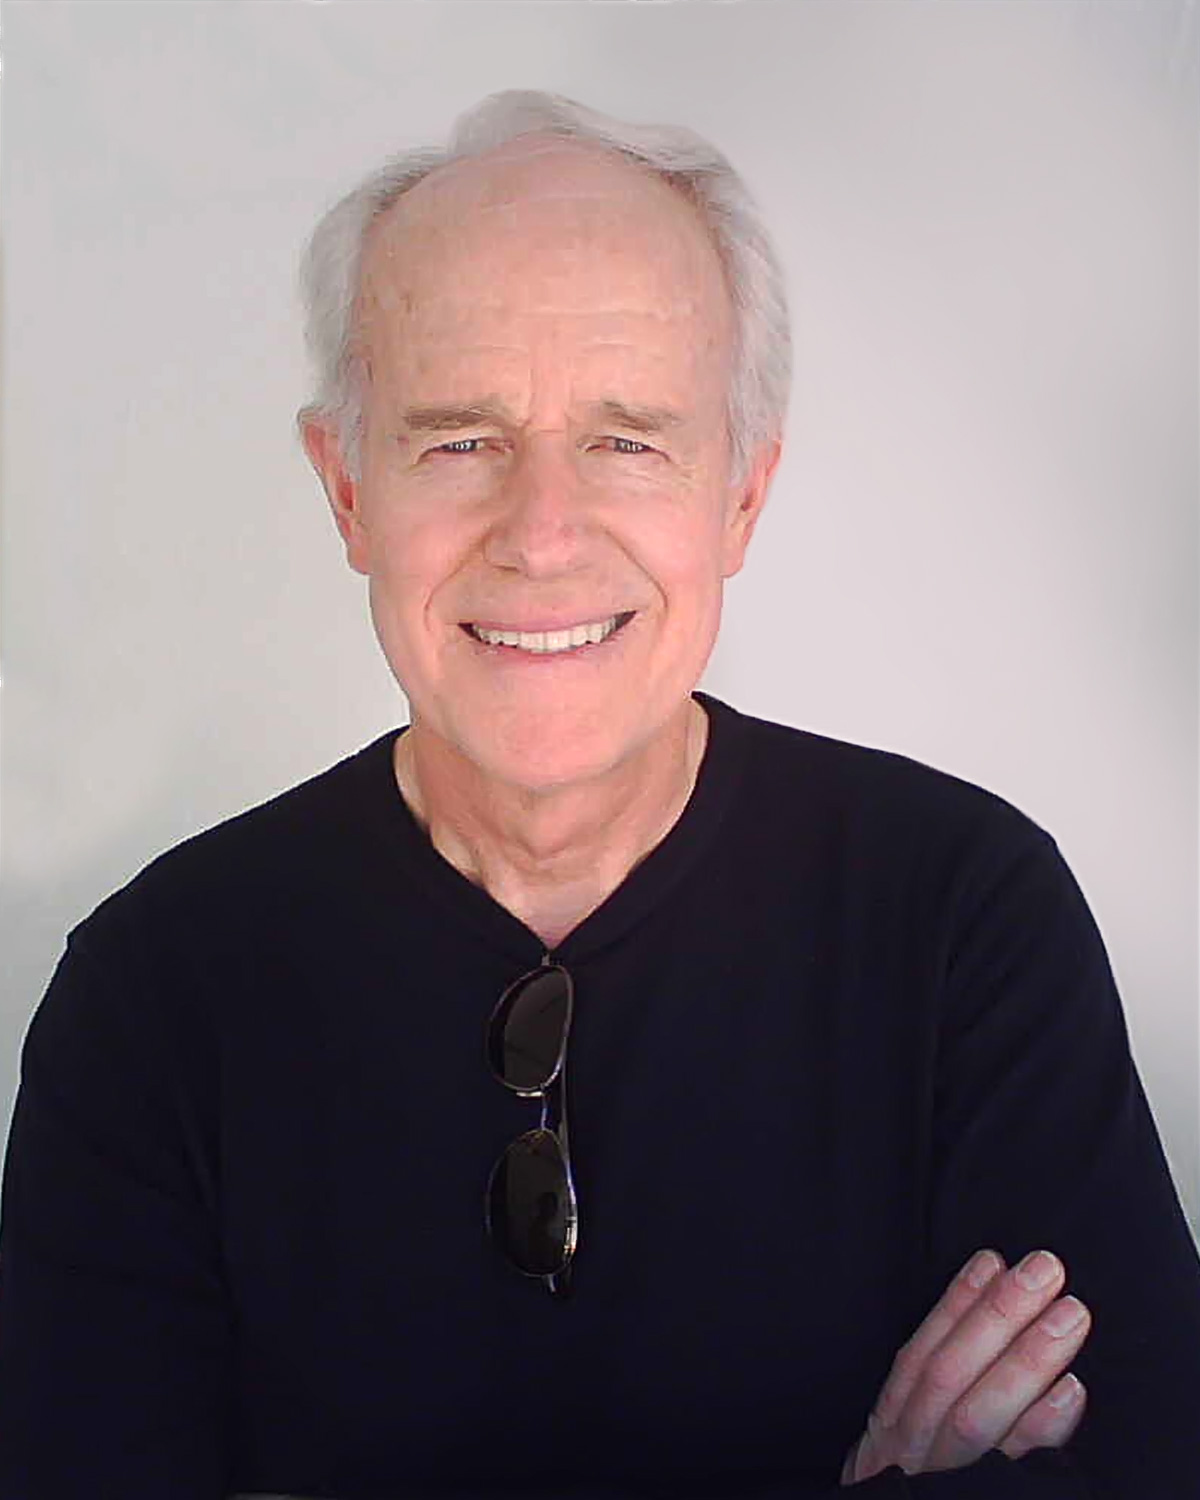 Mike Farrell - Actor, Producer, Activist